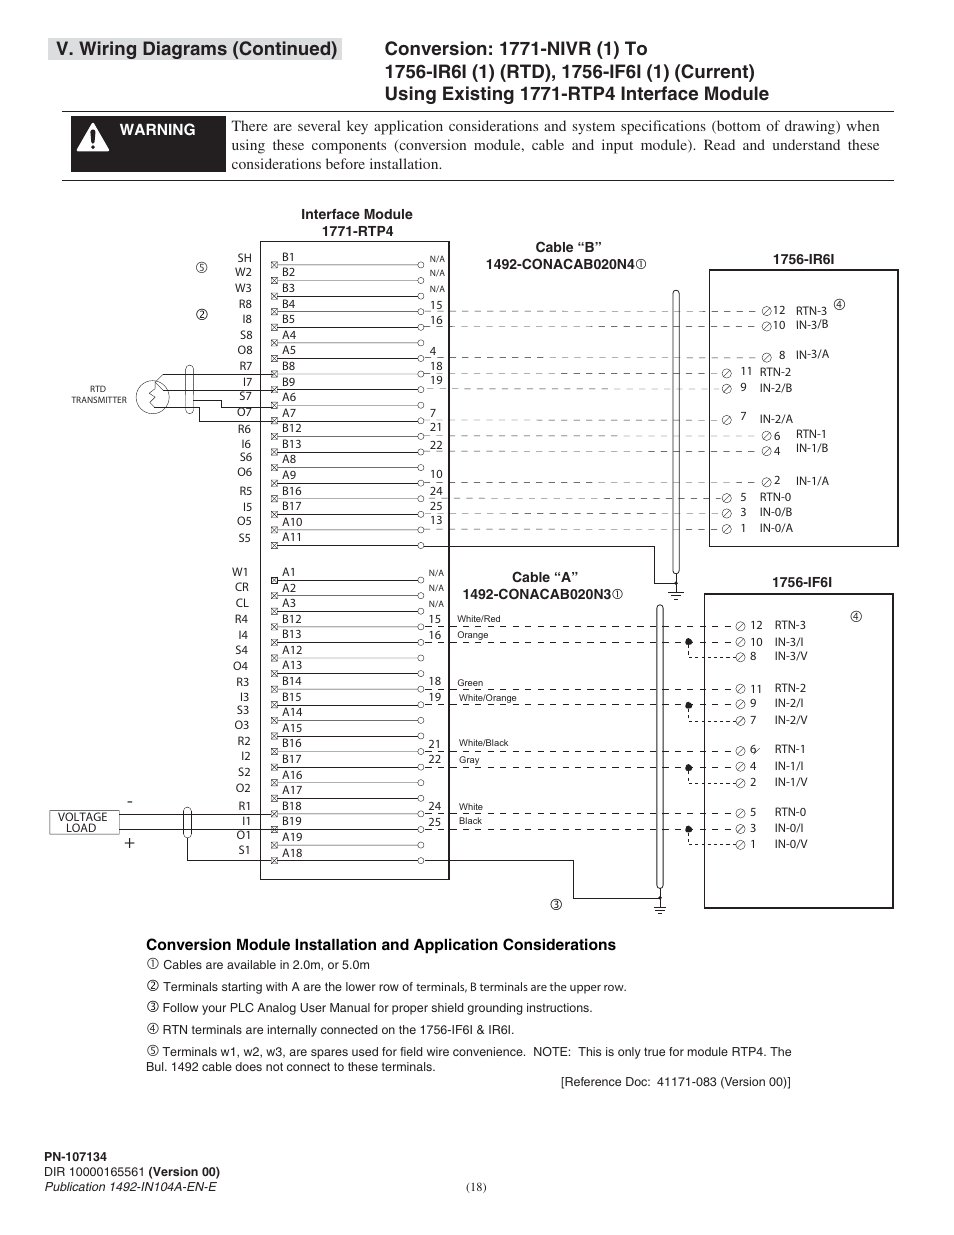 rockwell automation 1492 1771 n series i_o to 1756 controllogix i_o page18?resize\\\\\\\\\\\\\\\=665%2C861 1746 ow16 wiring diagram gmc fuse box diagrams, internet of 1746 ob16 wiring diagram at bayanpartner.co